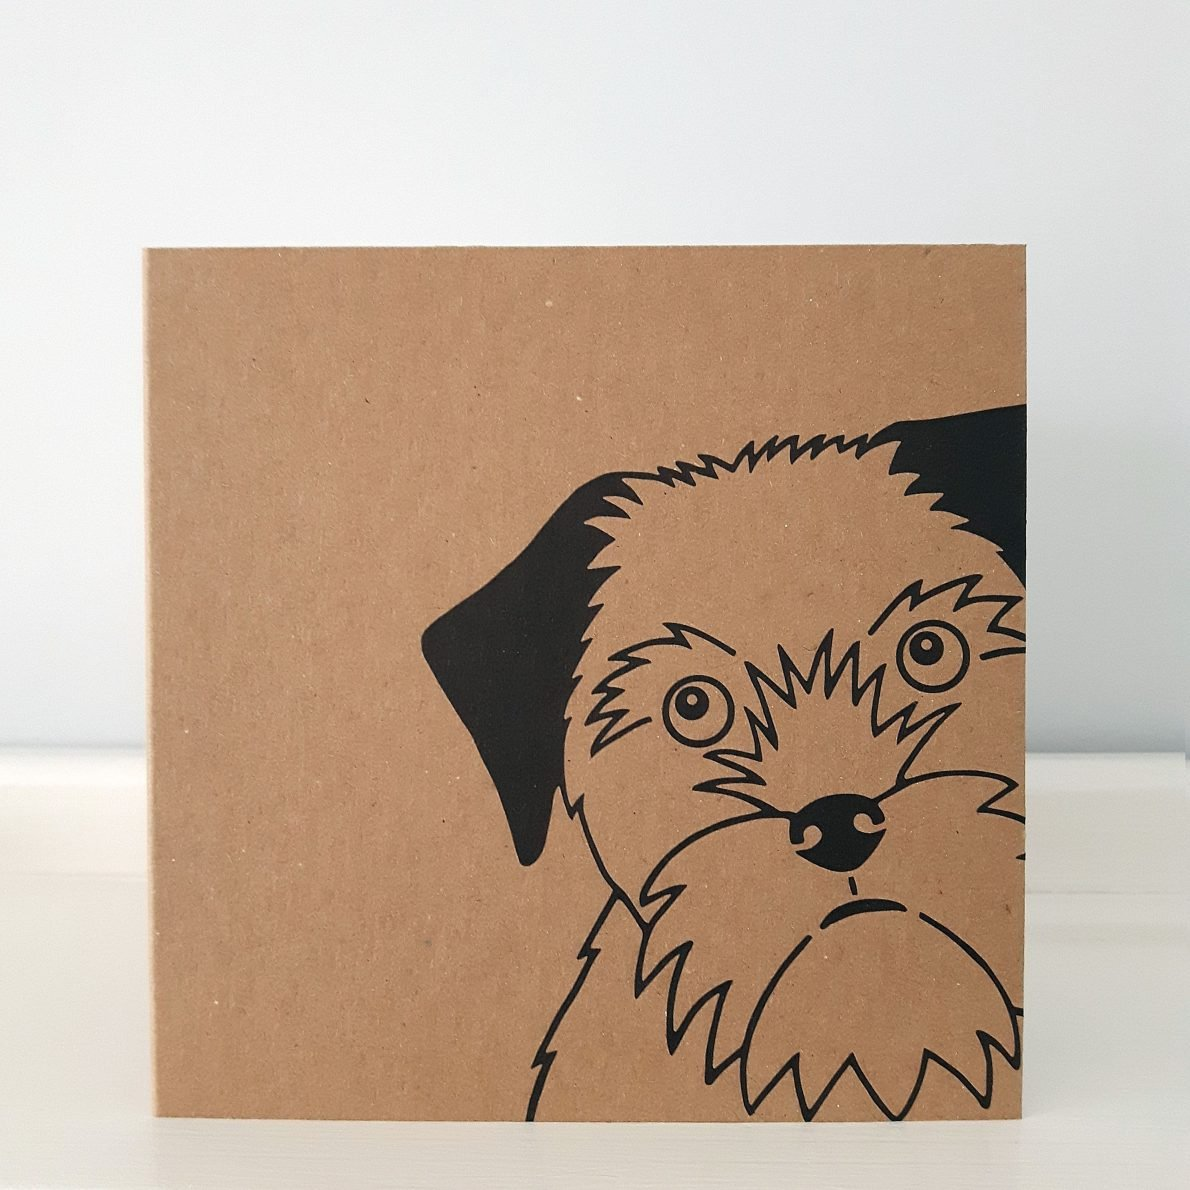 border terrier card. borwn kraft with close up of border terrier's face